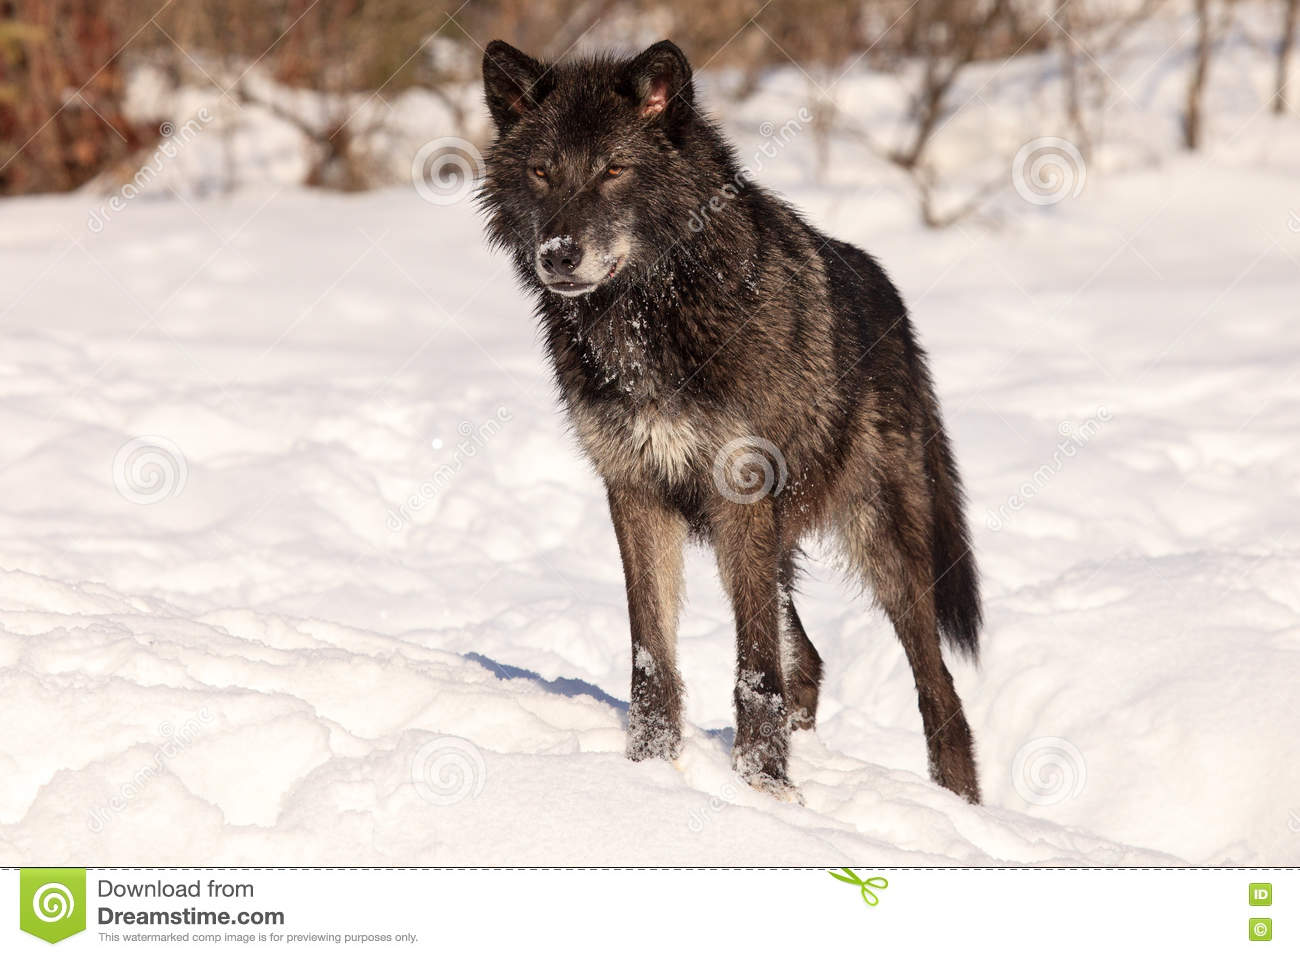 15 102 Black Wolf Photos Free Royalty Free Stock Photos From Dreamstime